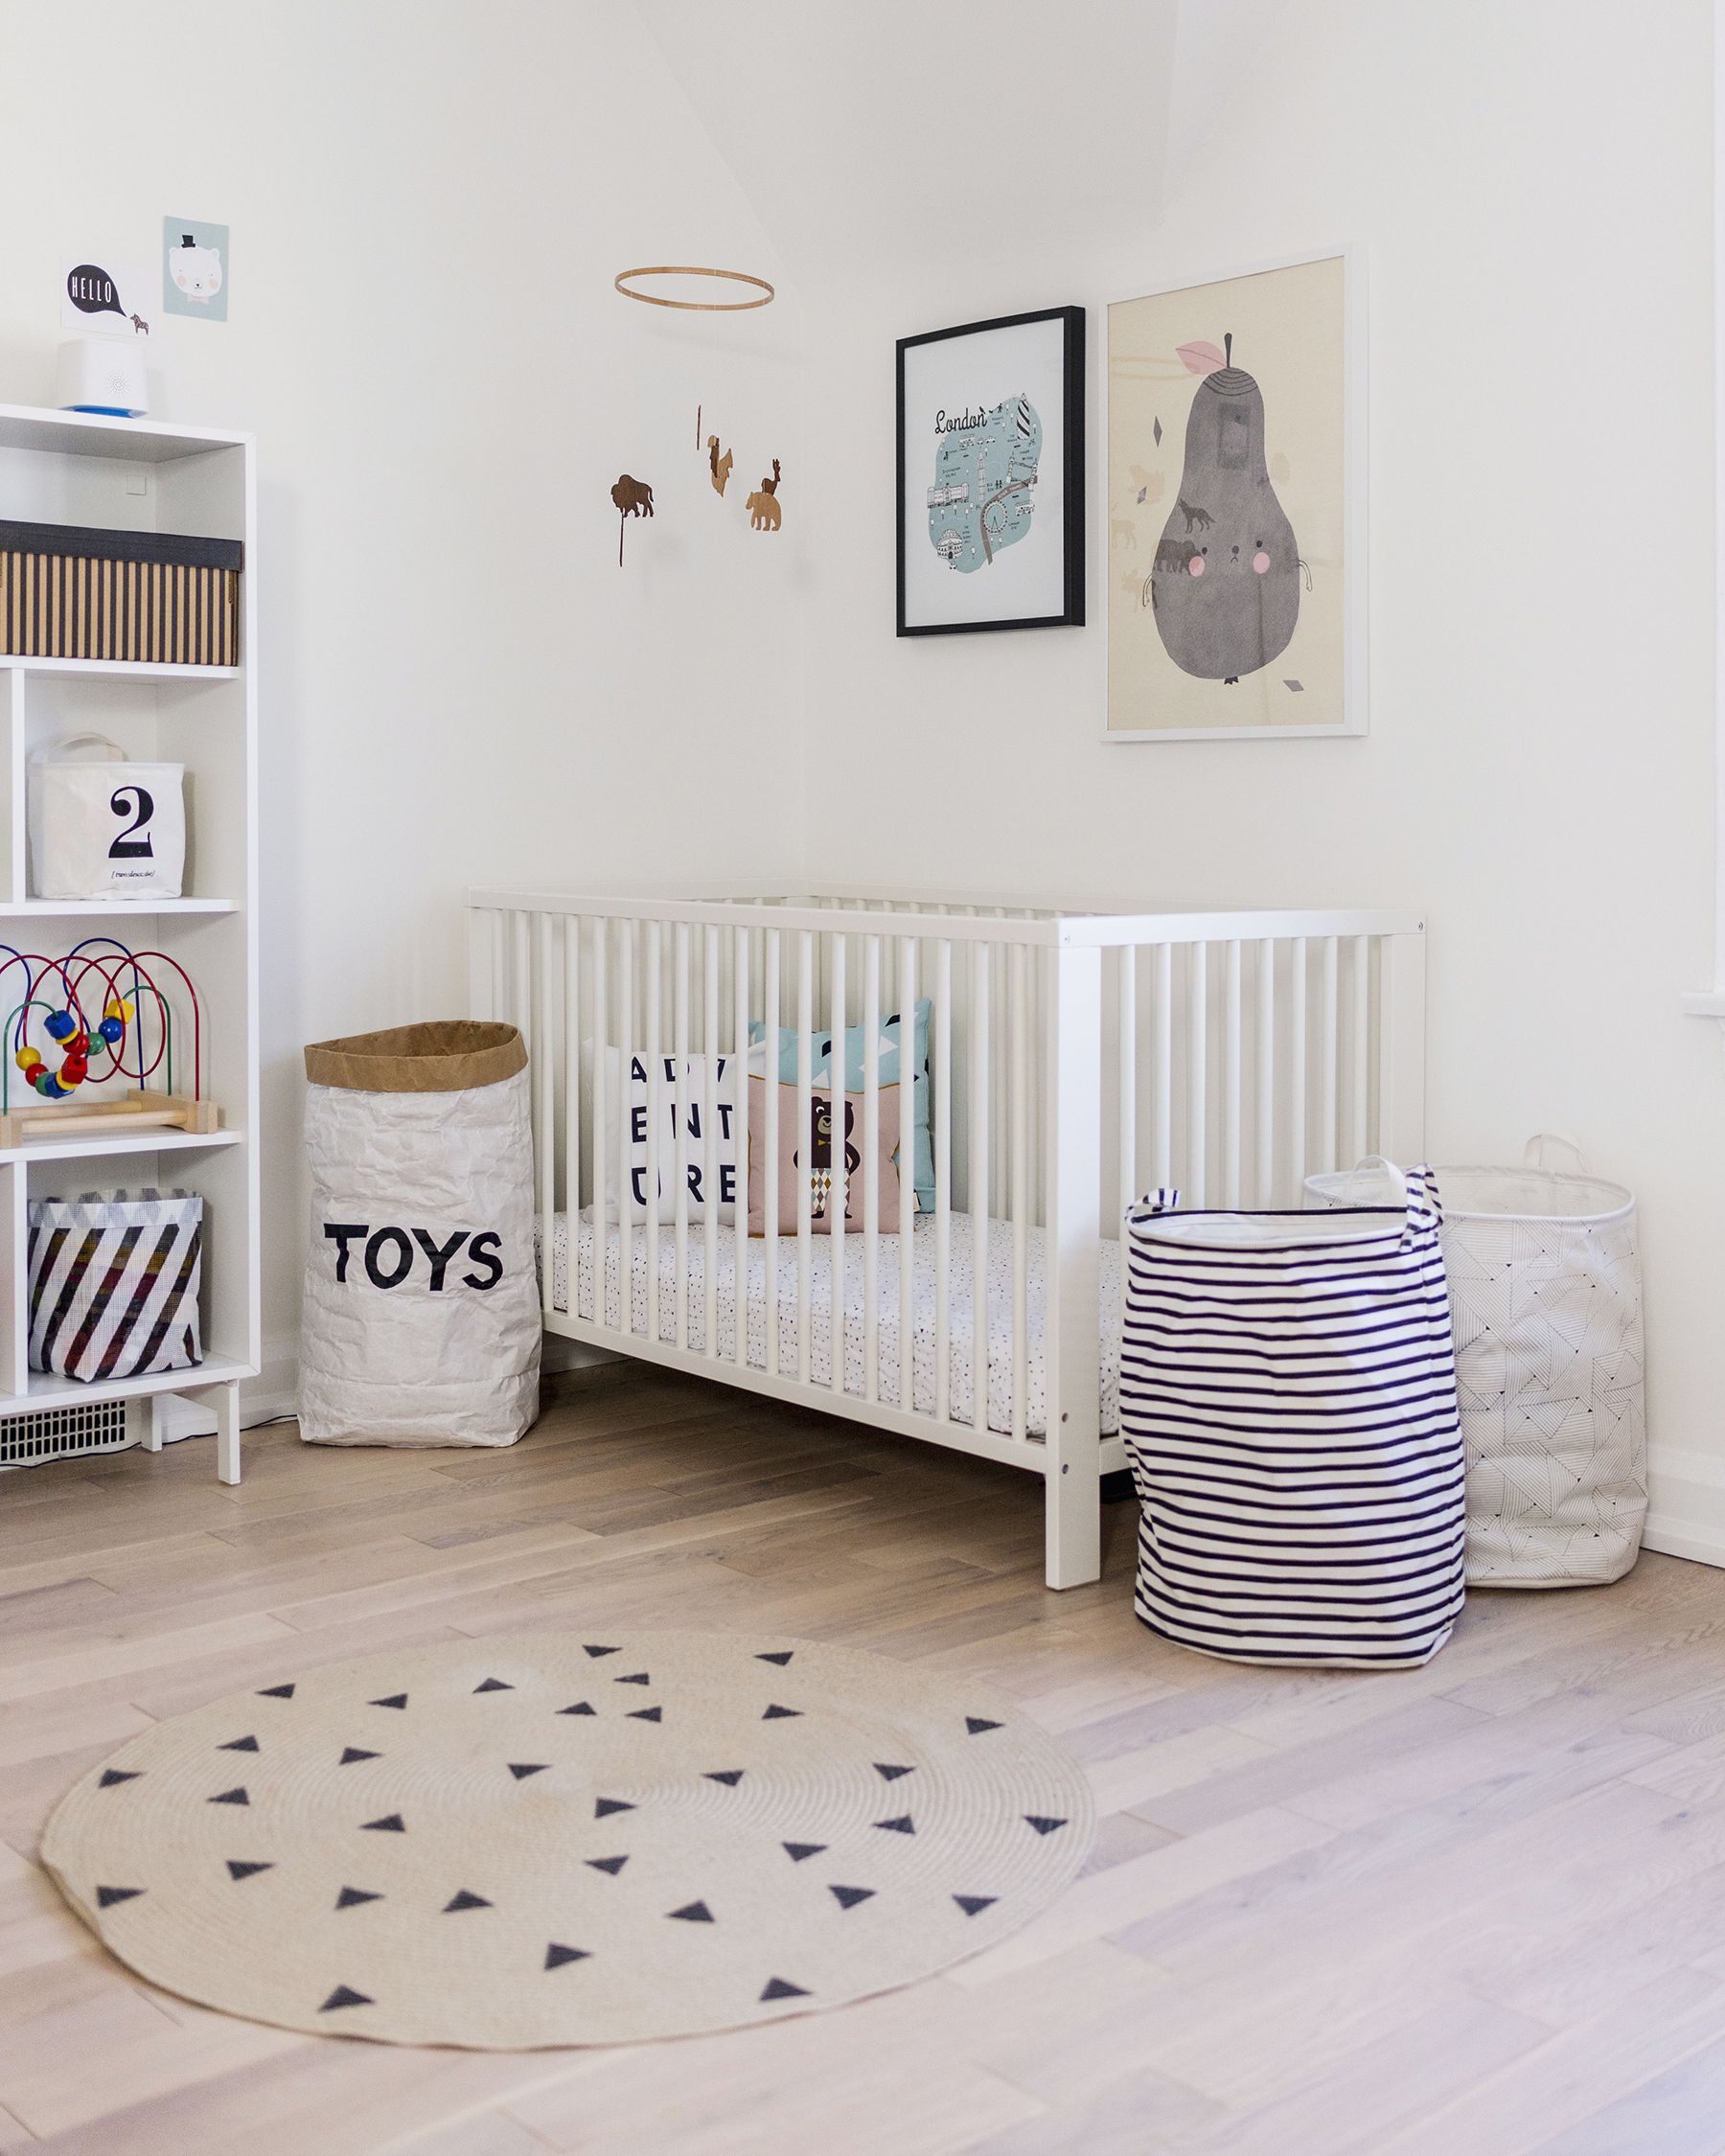 Favourite scandinavian nursery kids room decor items Scandinavian baby nursery